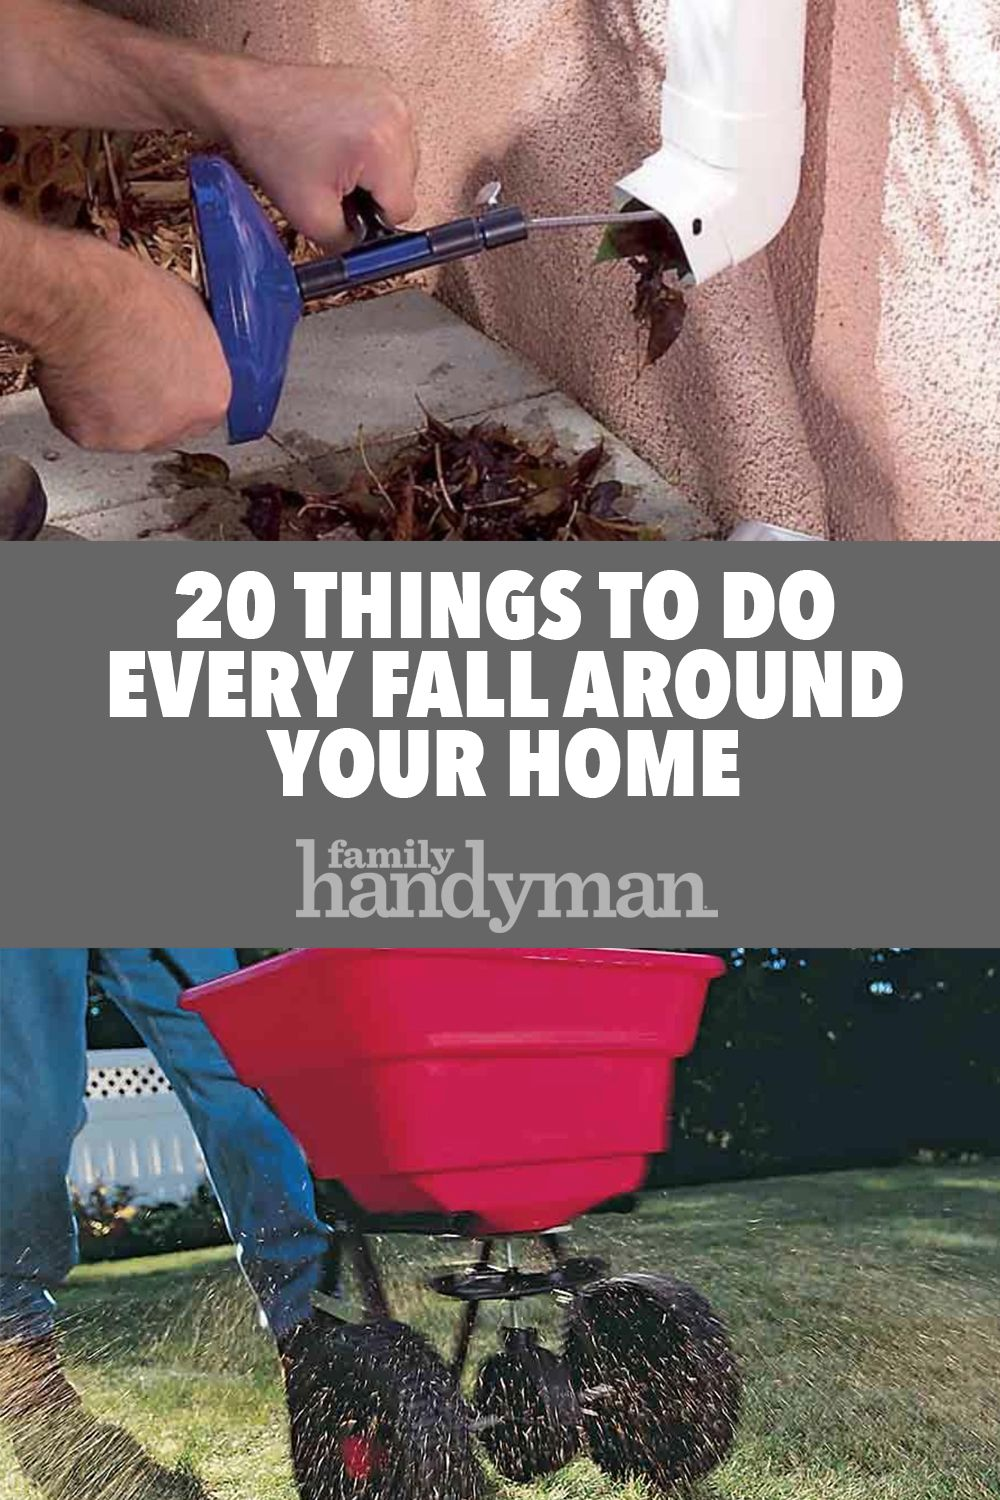 Photo of 20 Things to Do Every Fall Around Your Home